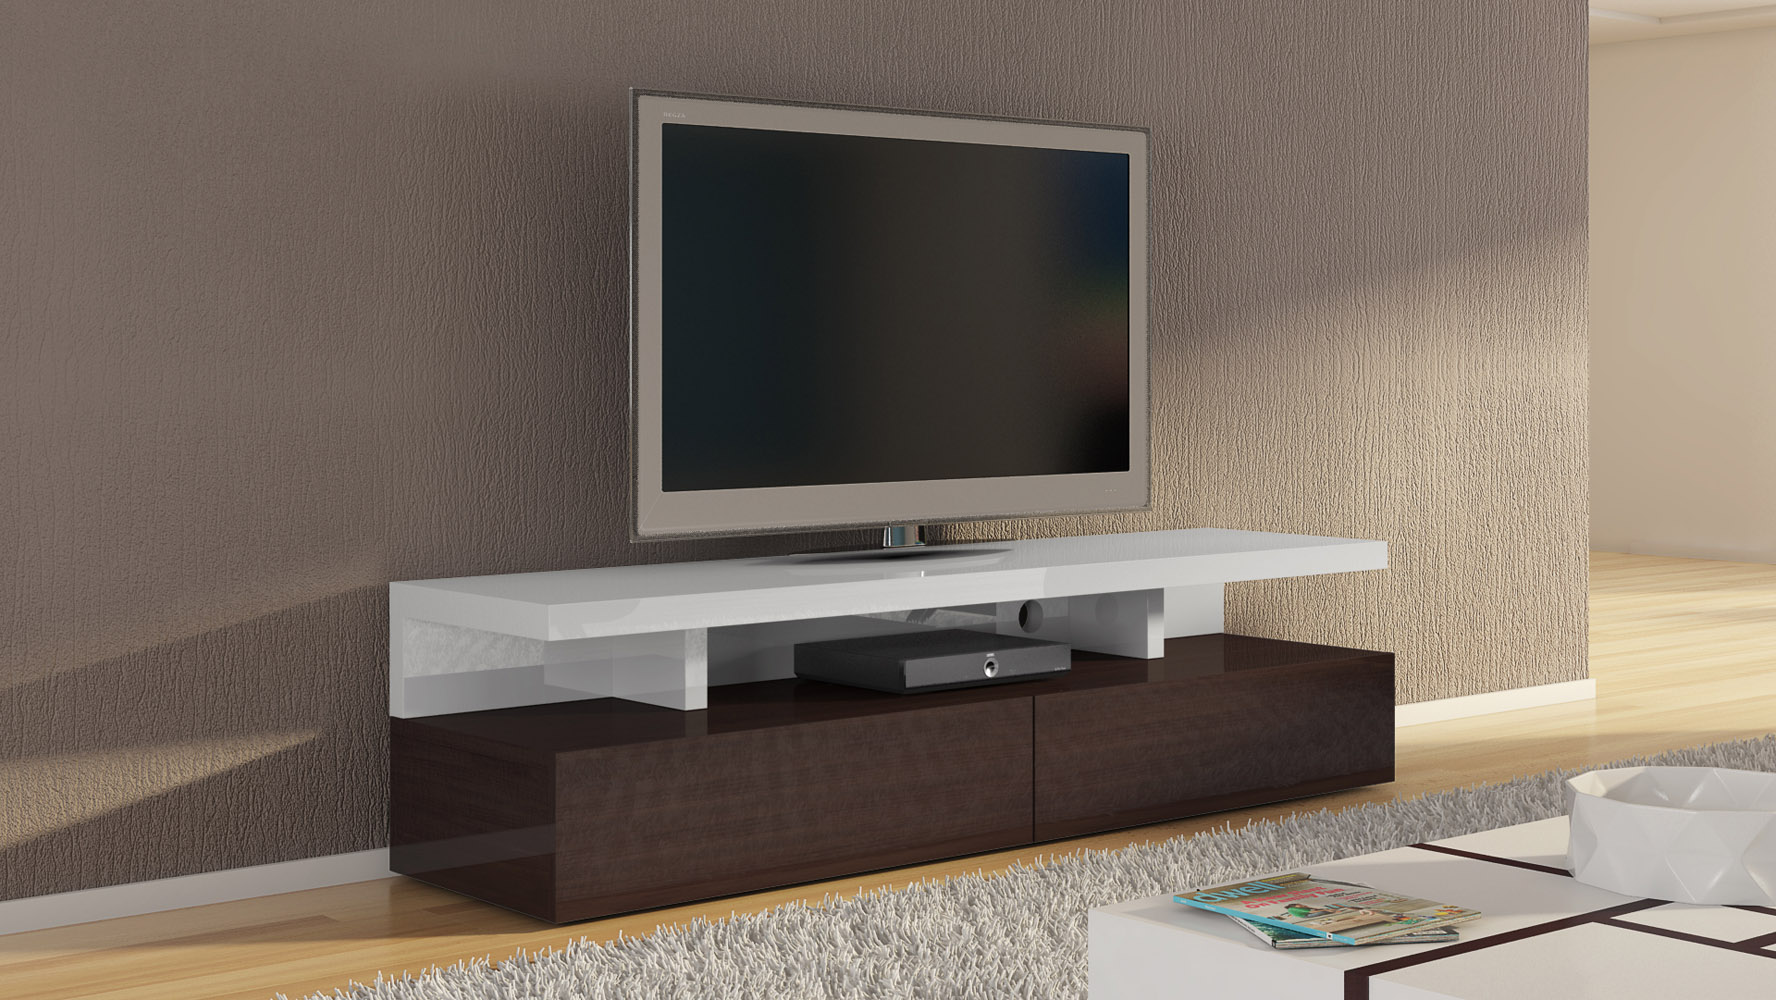 Mcintosh 71 Inch Tv Stand In White High